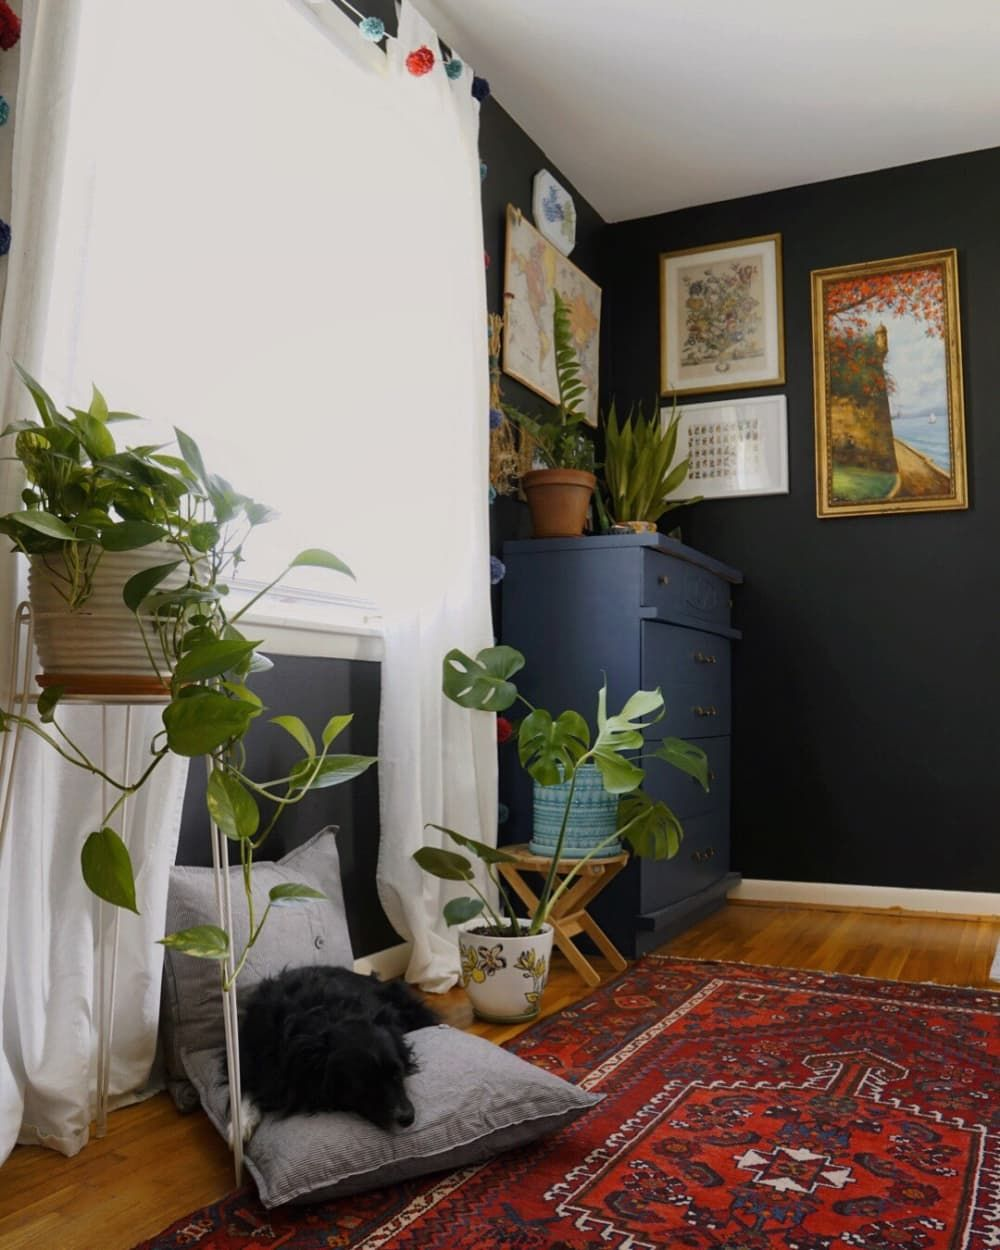 A Colorful Home With DIY Murals Subscribes to a 'Do What